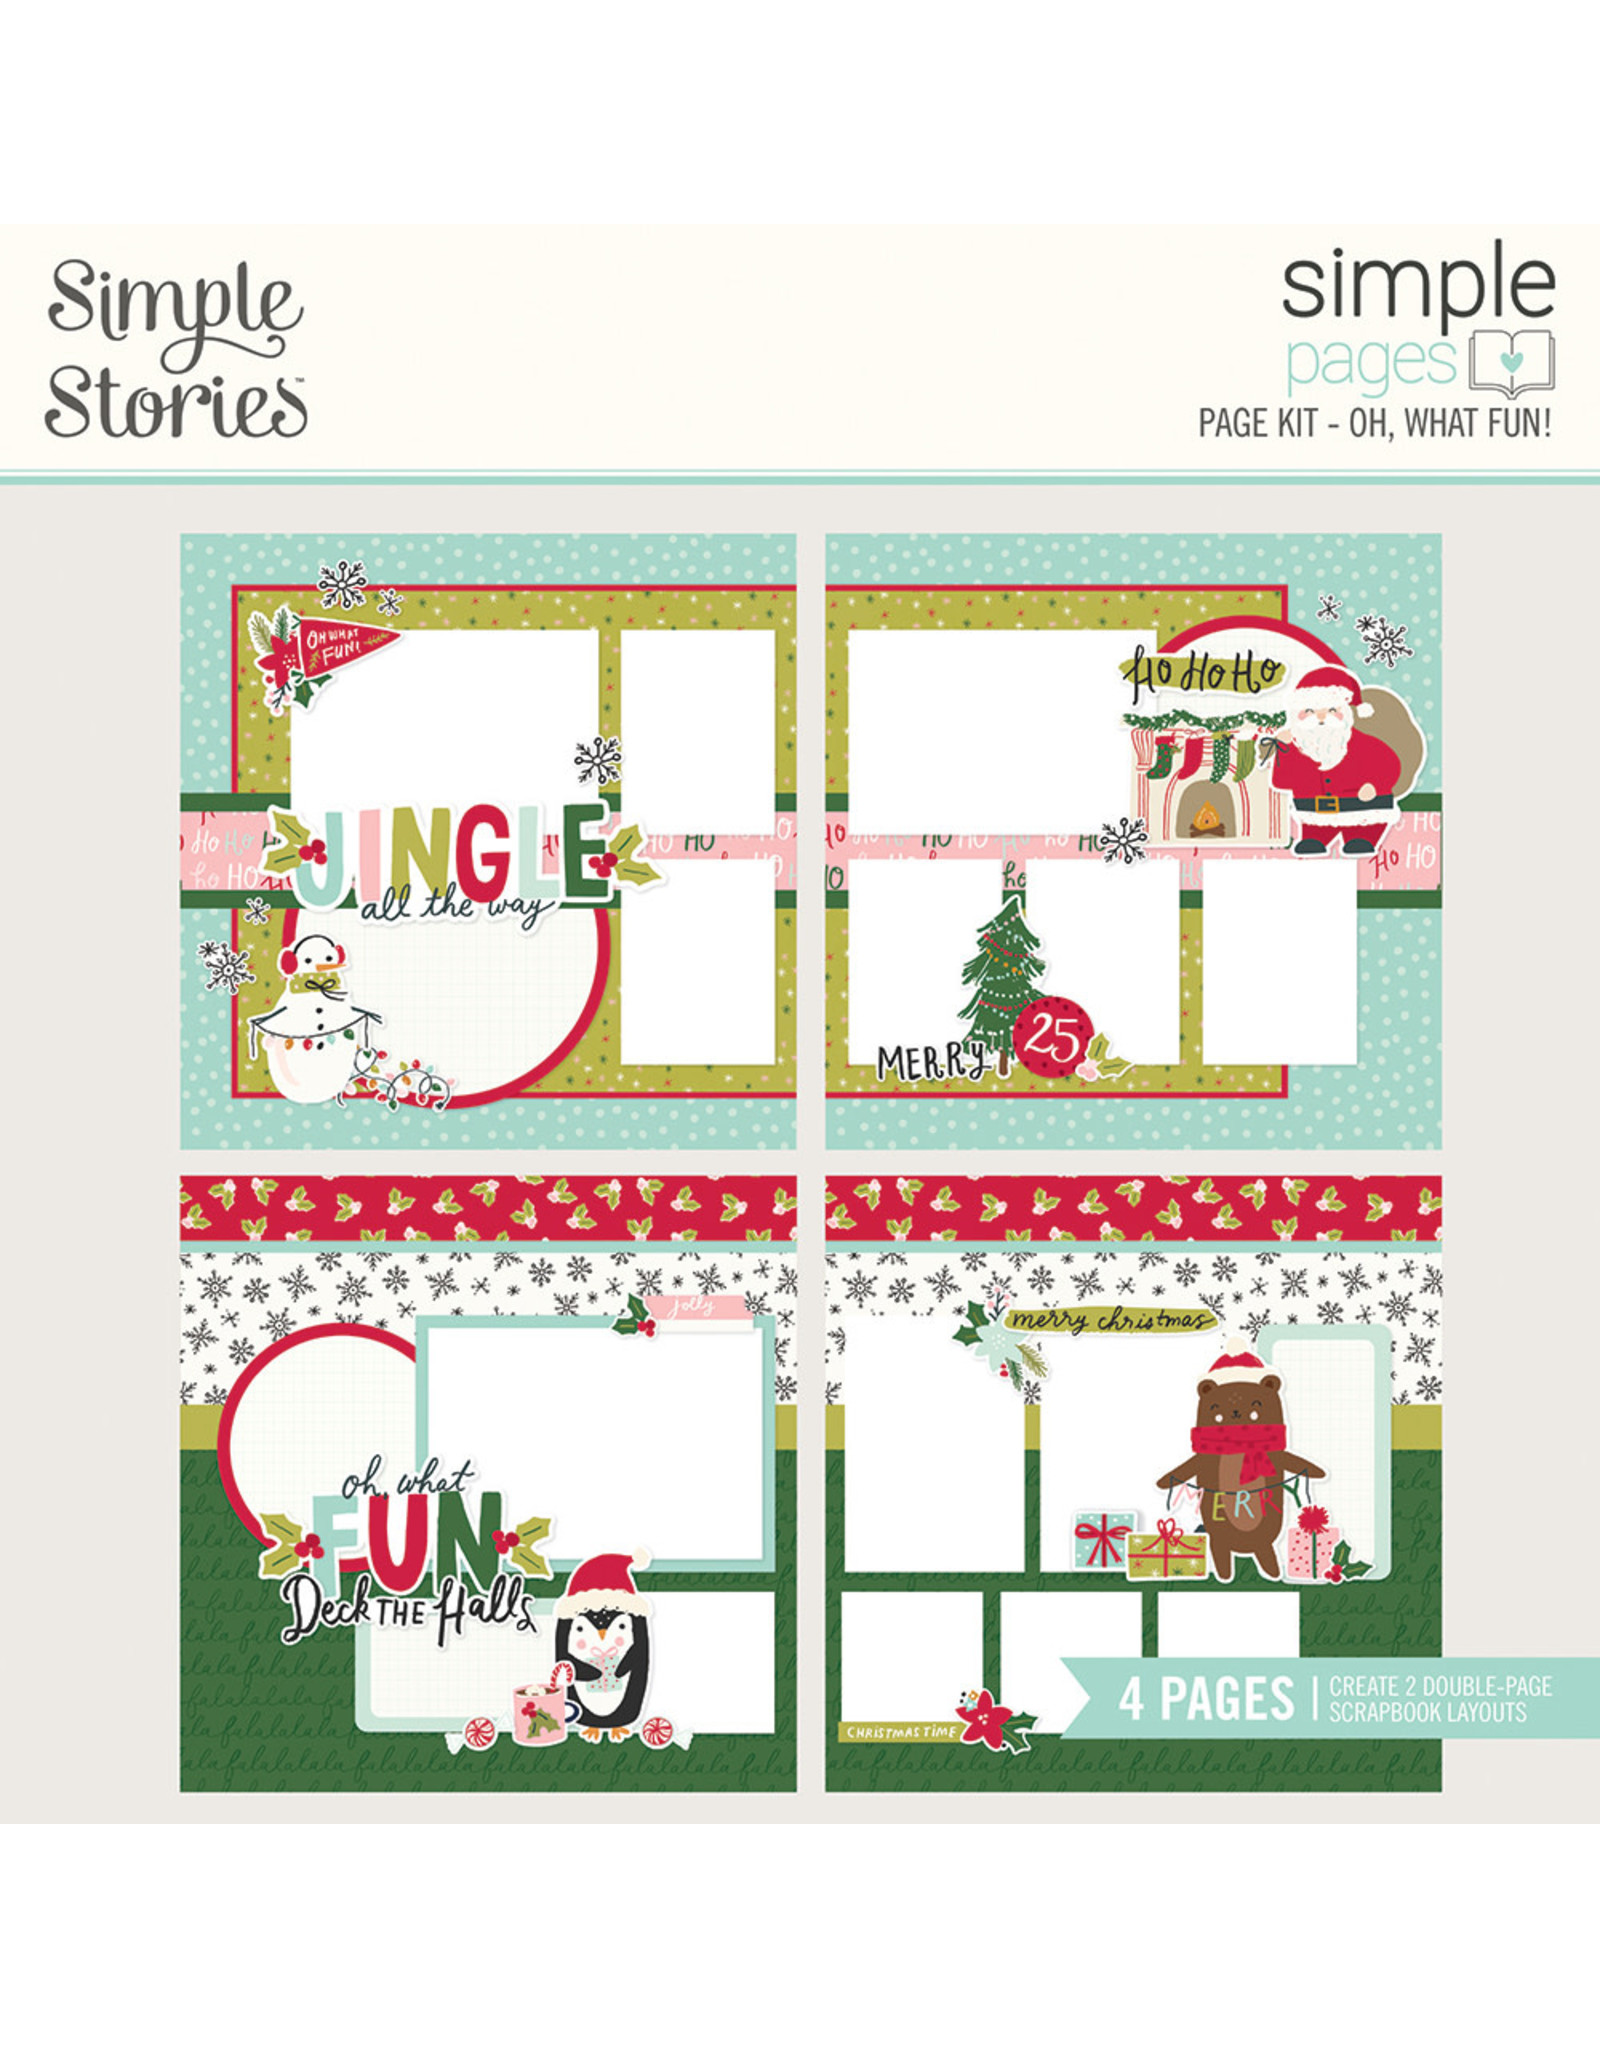 Simple Stories Simple Pages Page Kit - Oh, What Fun!